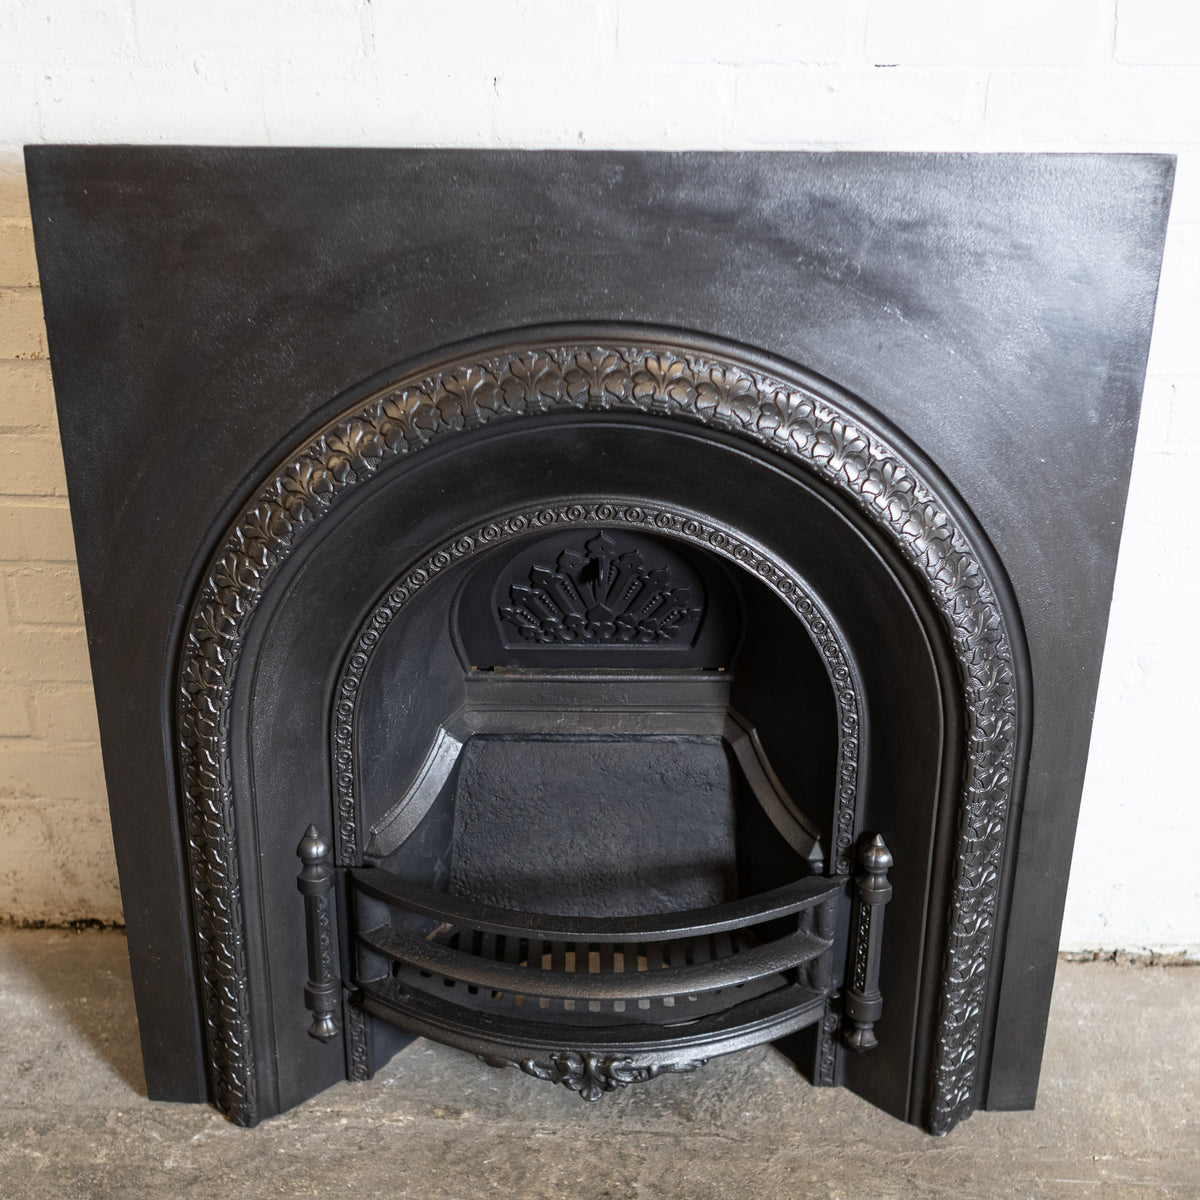 Antique Cast Iron Arched Fireplace Insert | The Architectural Forum